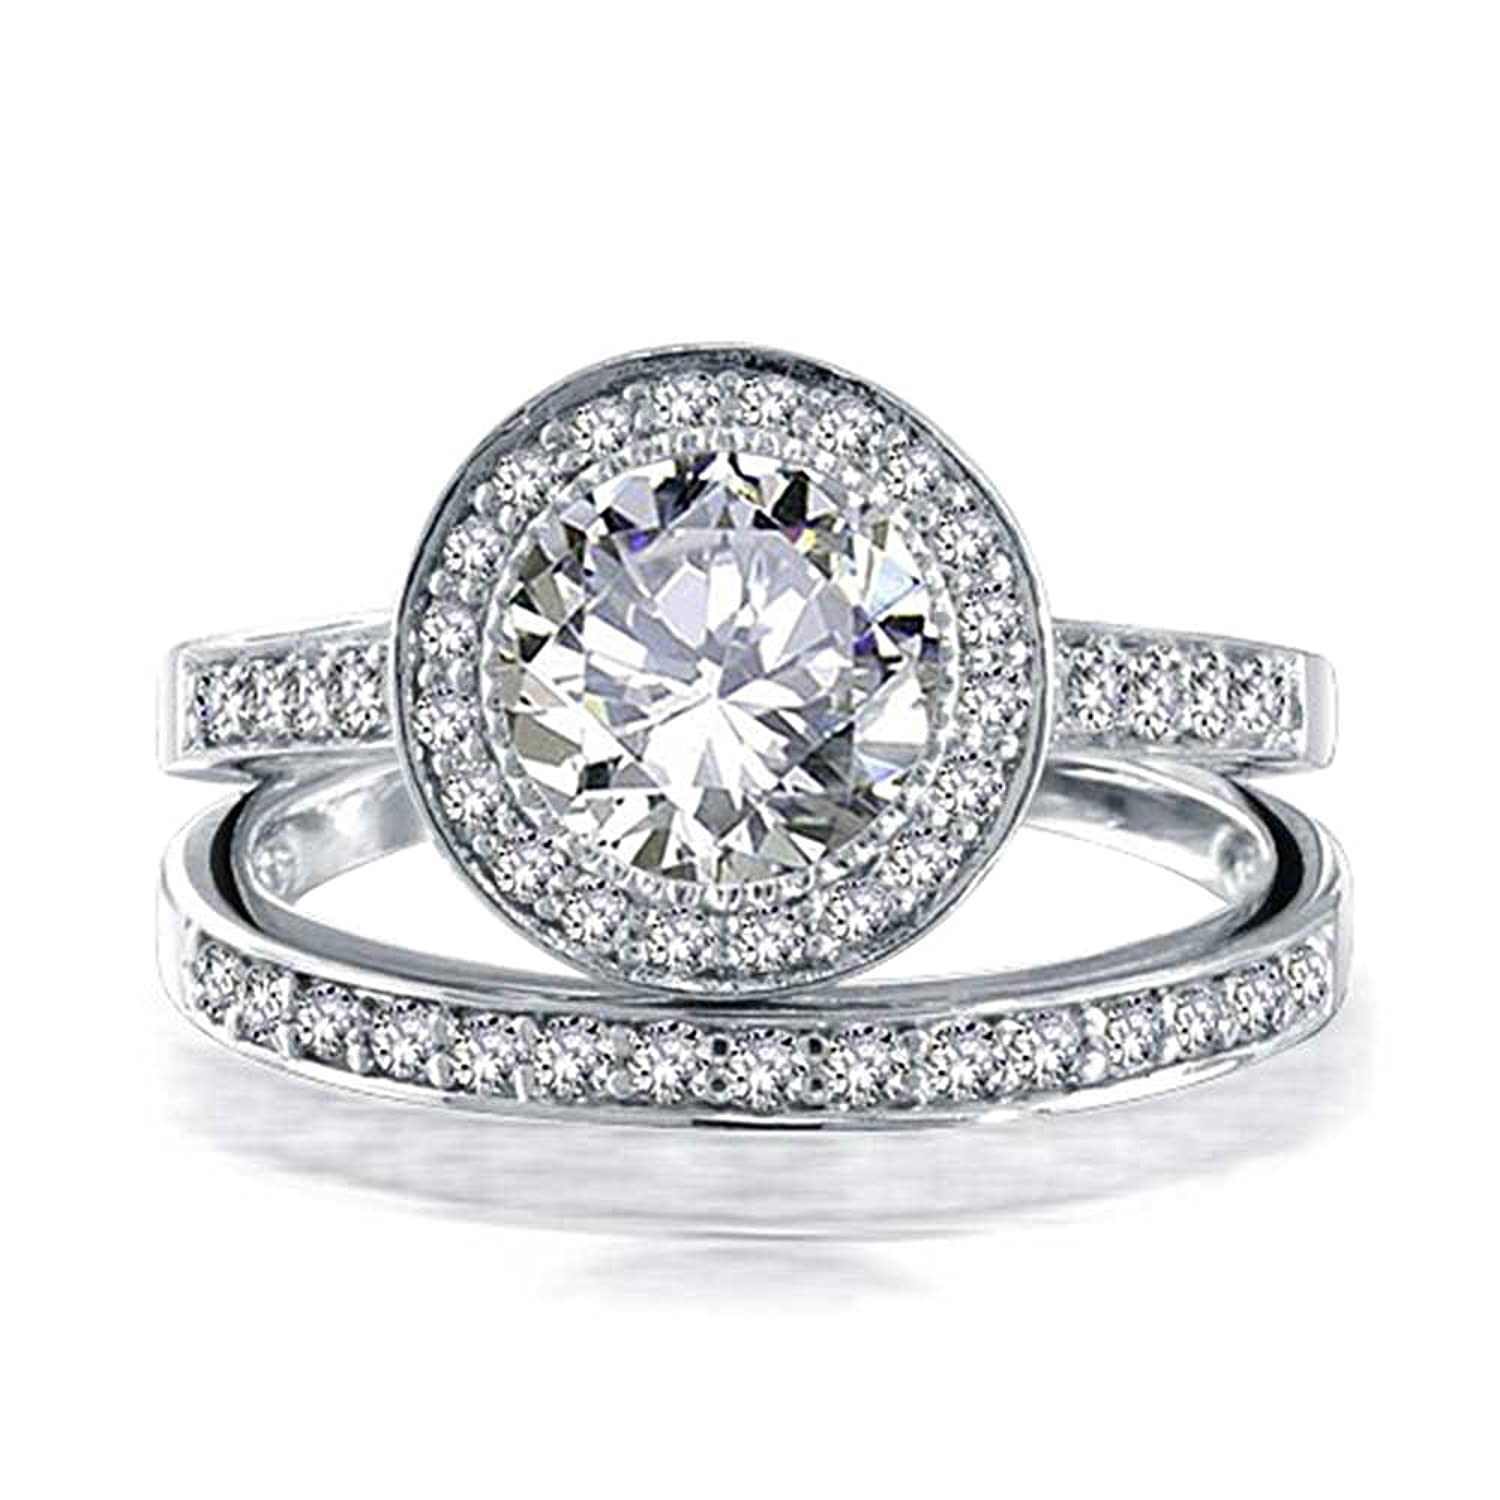 bling jewelry 925 silver round 2ct cz engagement